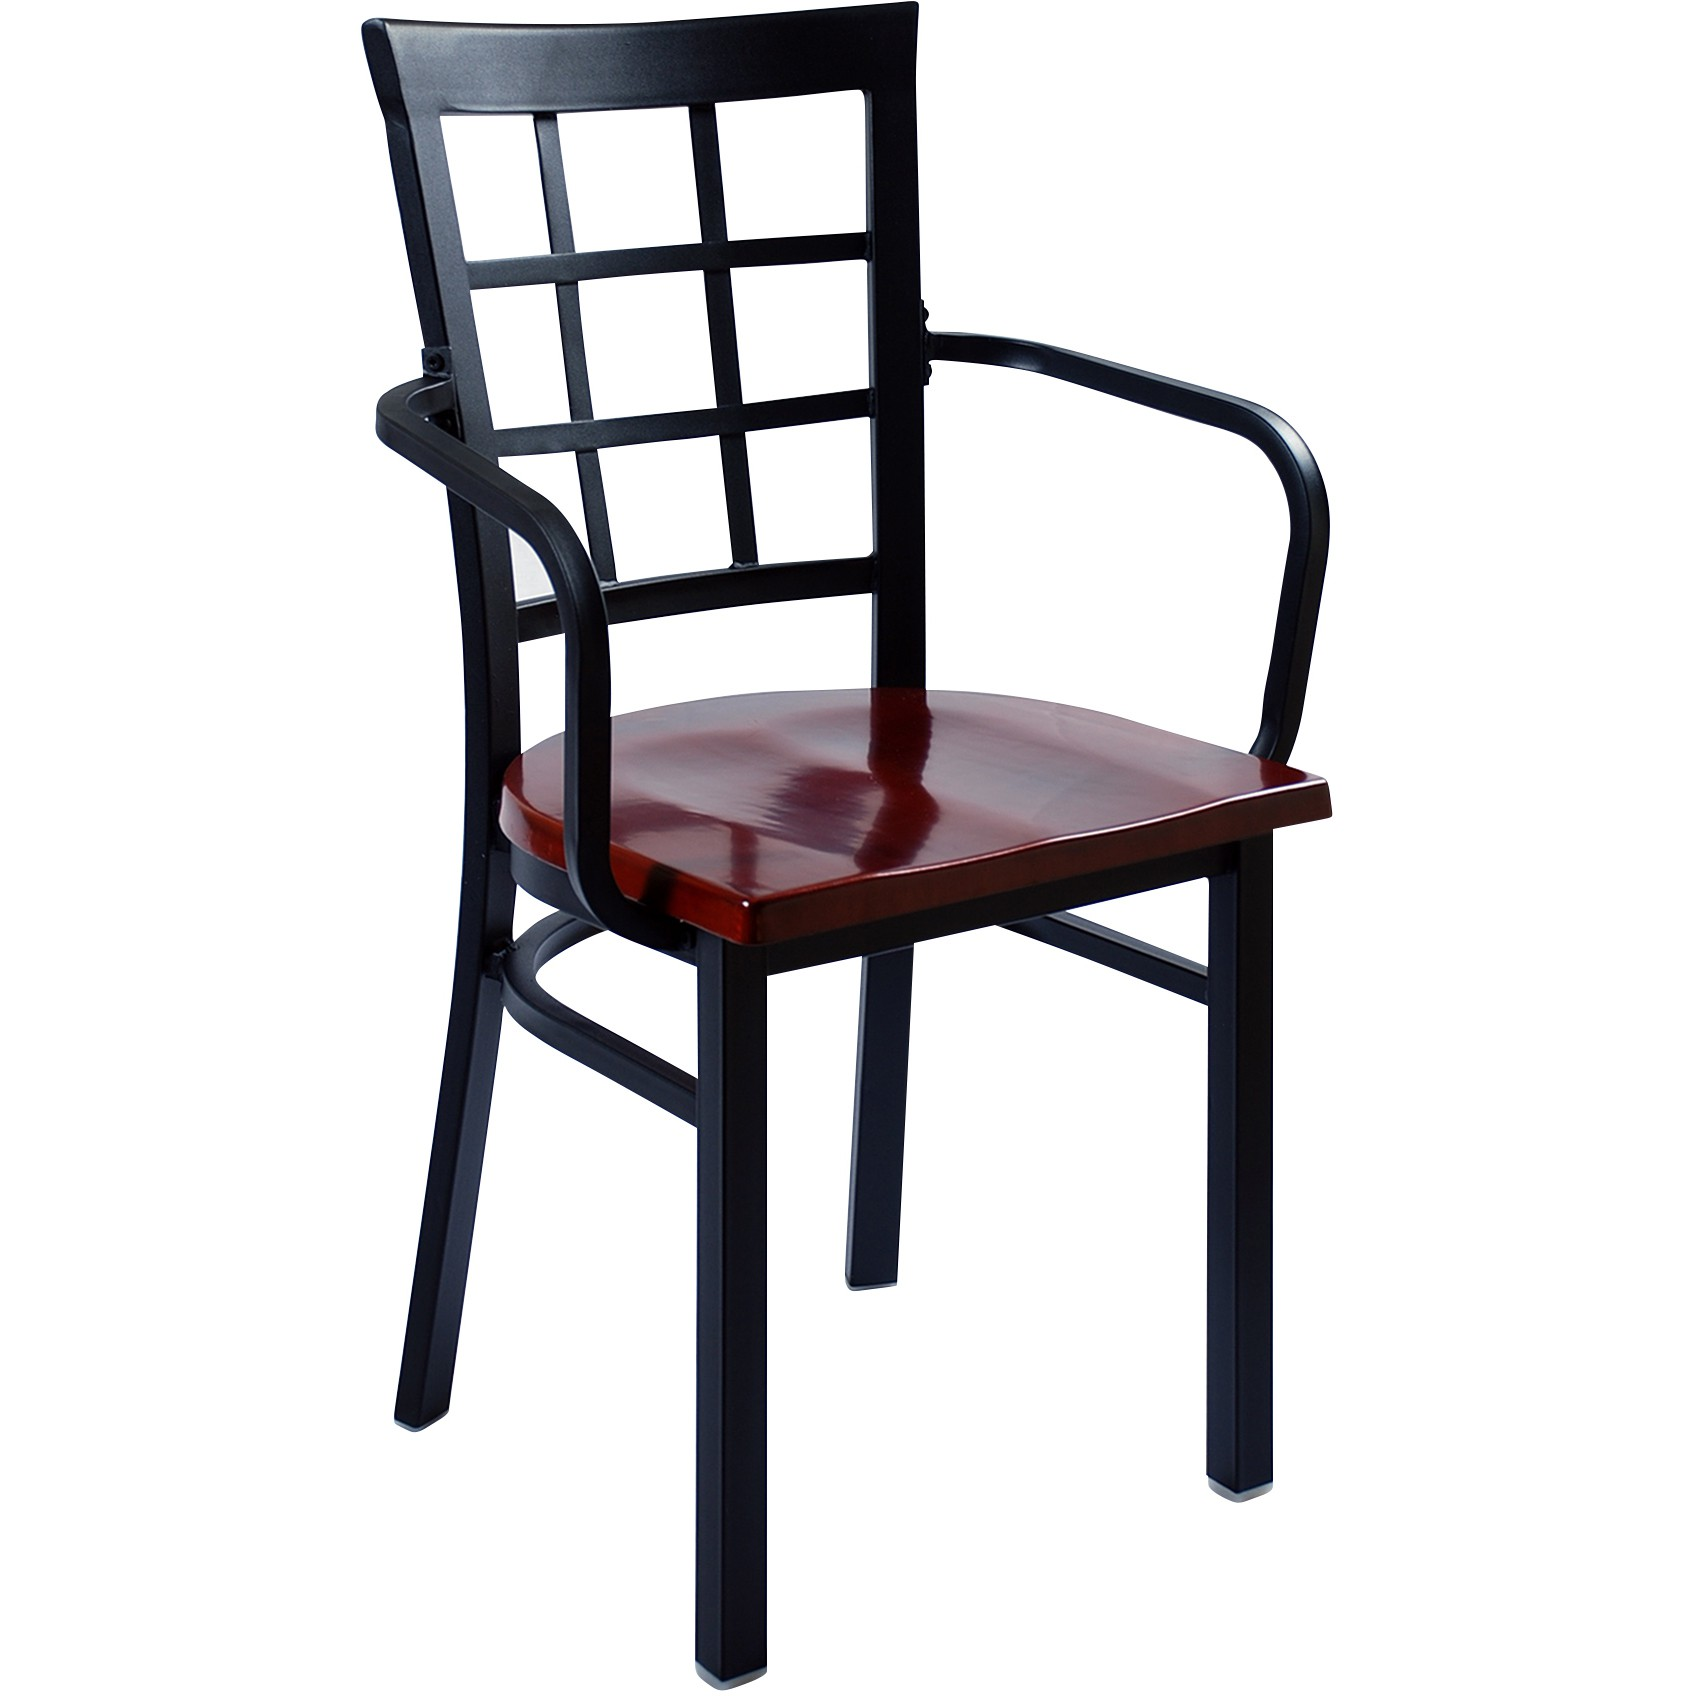 metal restaurant chairs ikea long chair window back with arms